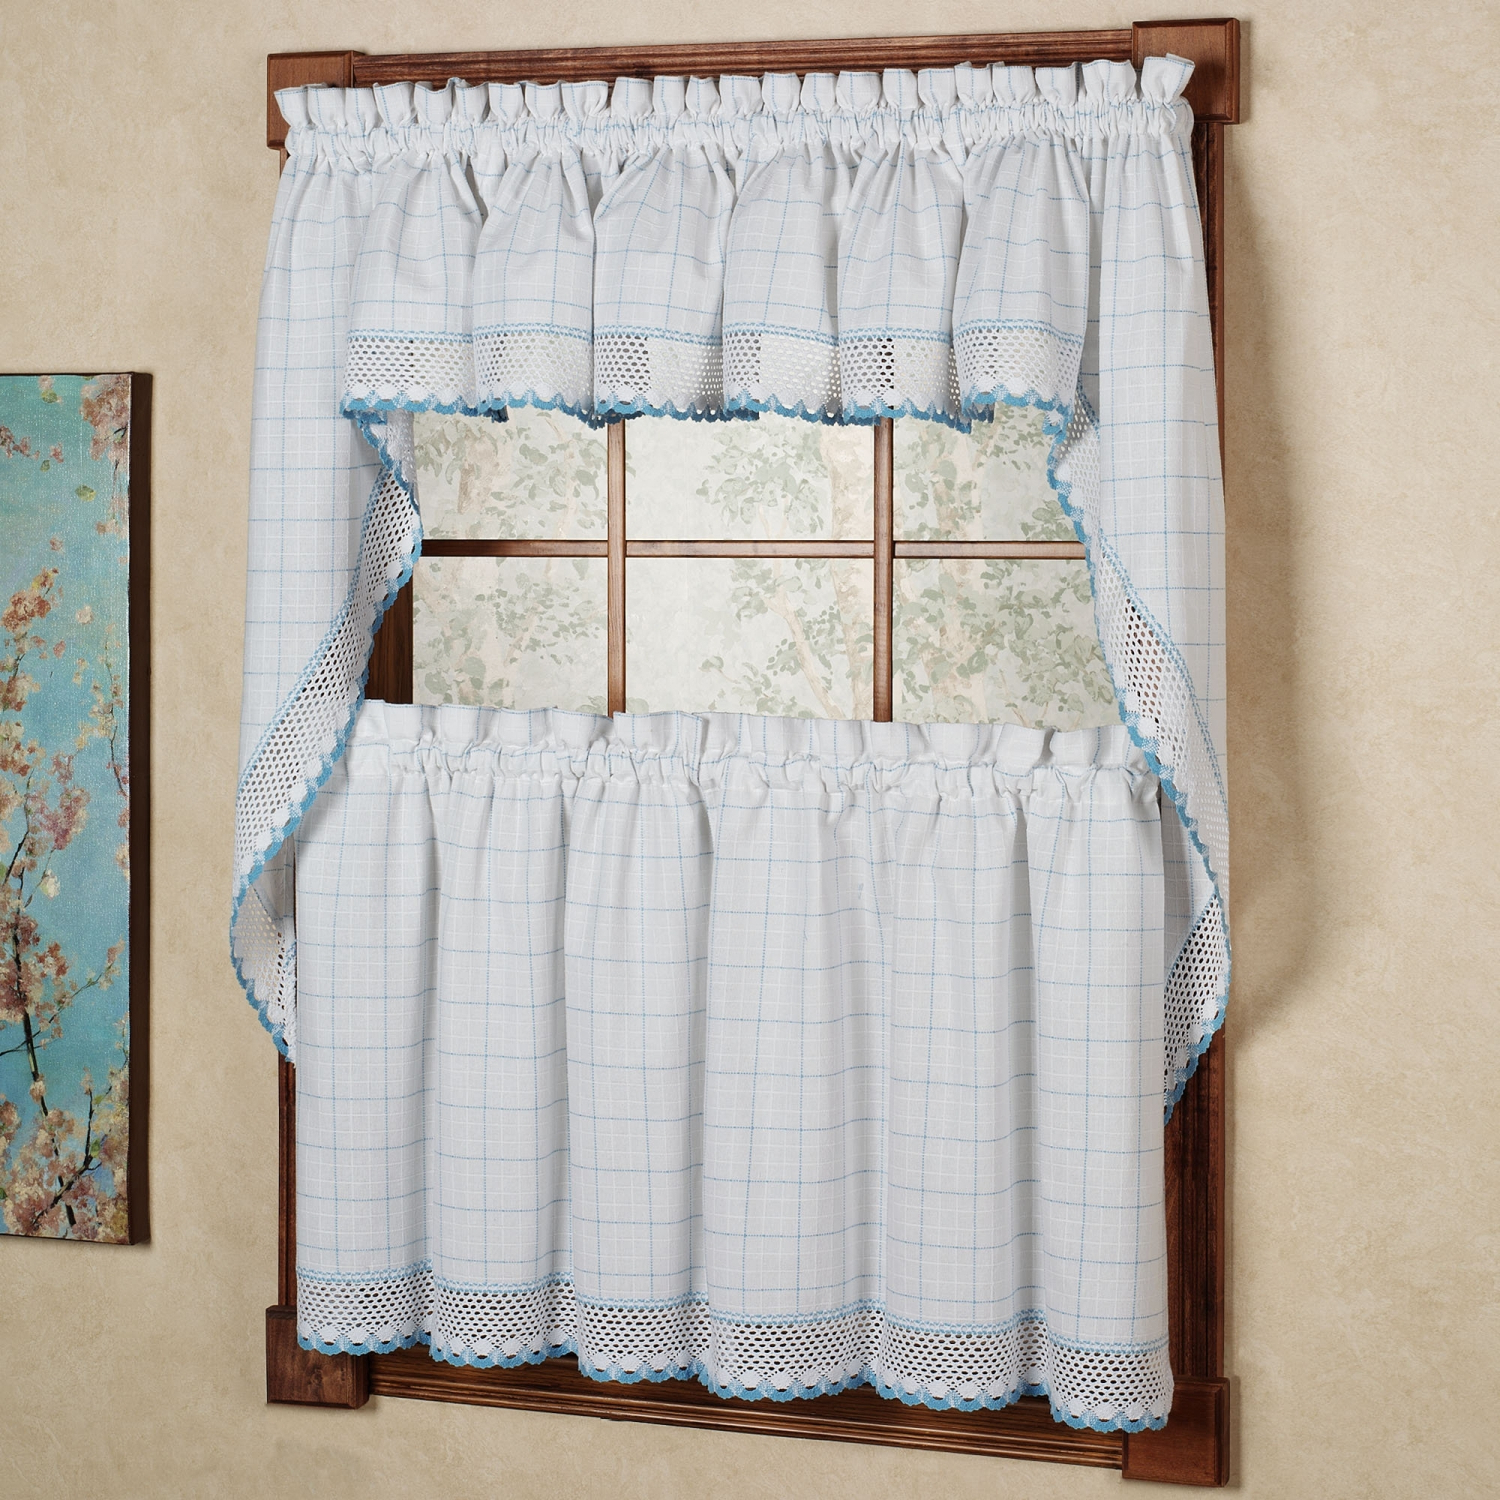 Most Up To Date White Knit Lace Bird Motif Window Curtain Tiers For Details About Adirondack Cotton Kitchen Window Curtains – White/blue – Tiers, Valance Or Swag (Gallery 13 of 20)